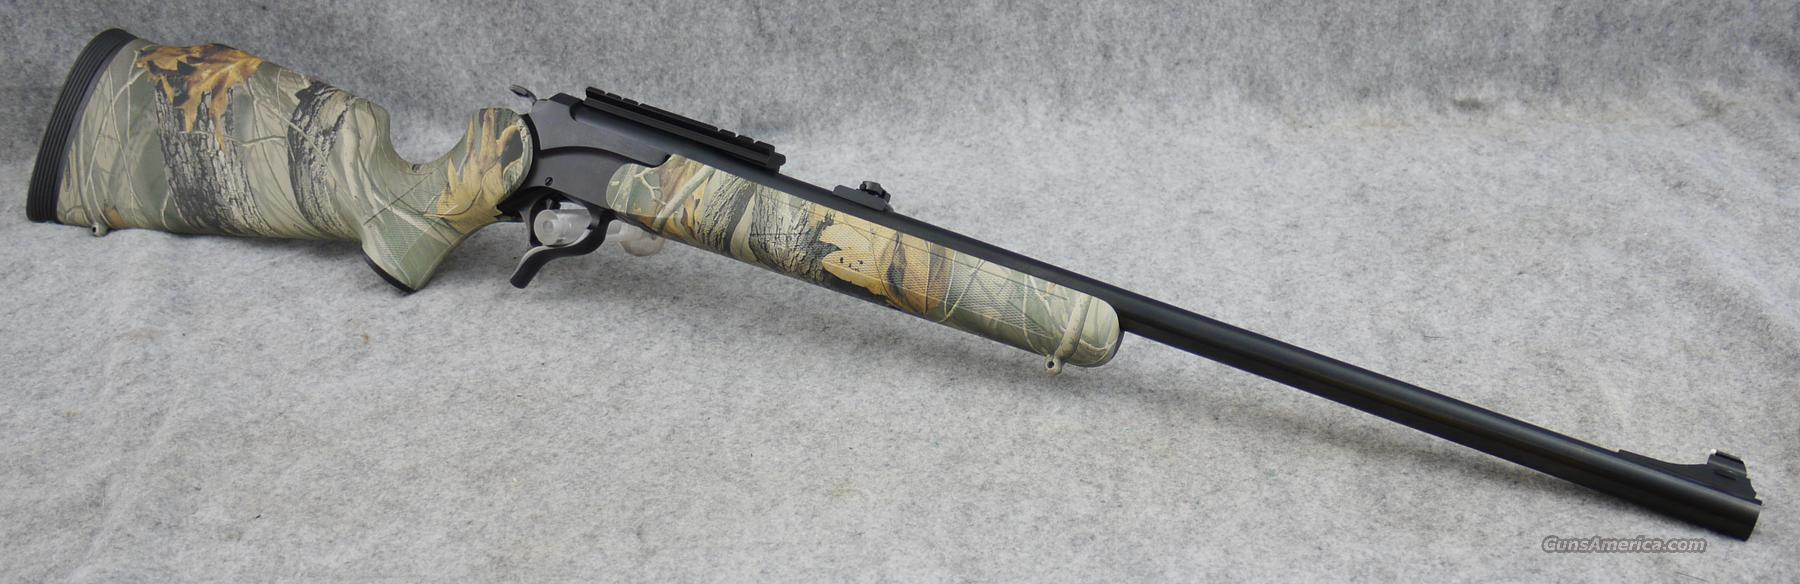 "Thompson/Center Encore .280 Rem. 24"" Realtree Hardwoods - EXCELLENT  Guns"